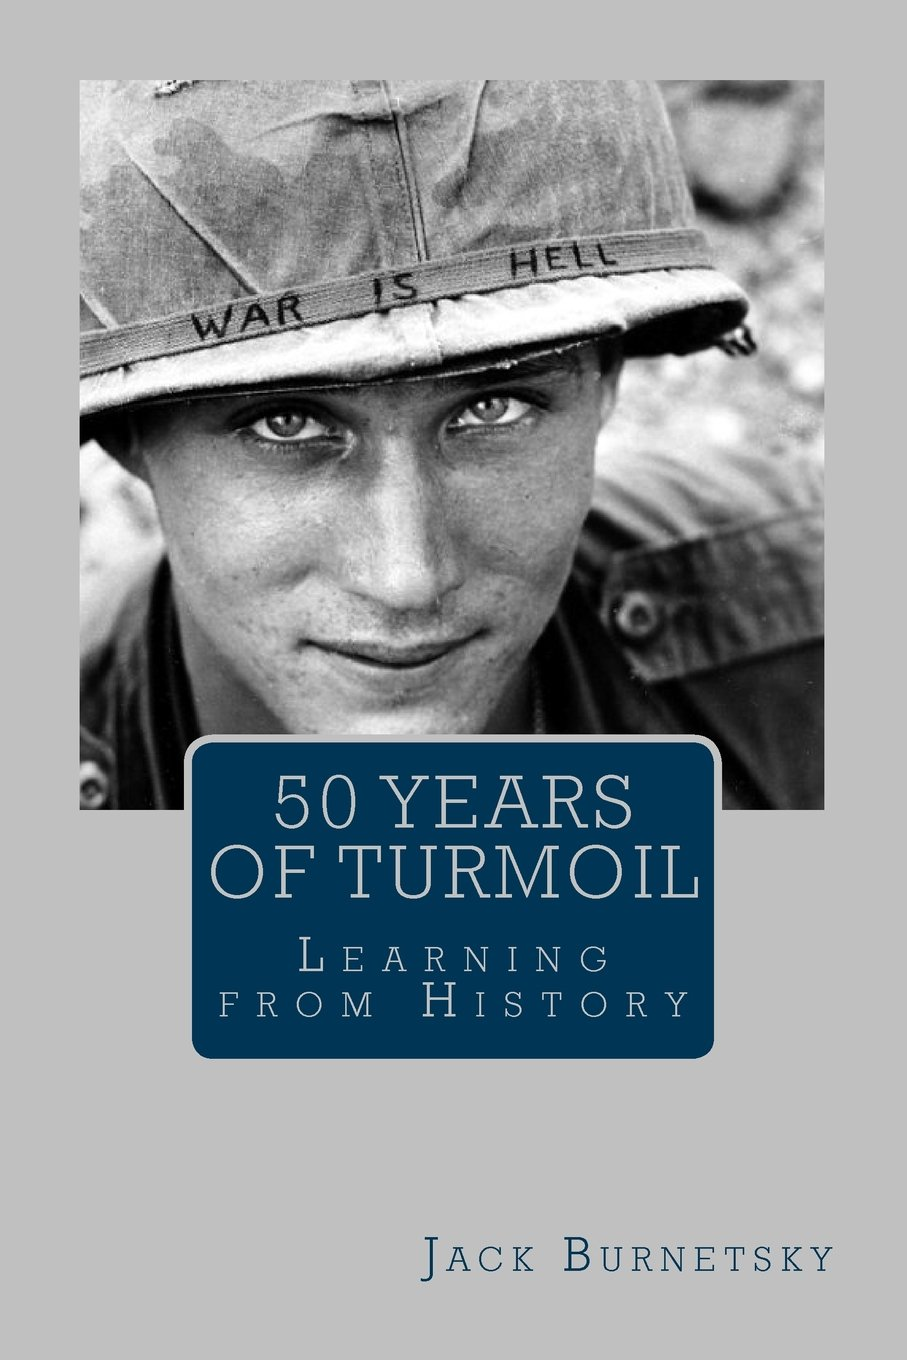 50 Years of Turmoil: Learning from History